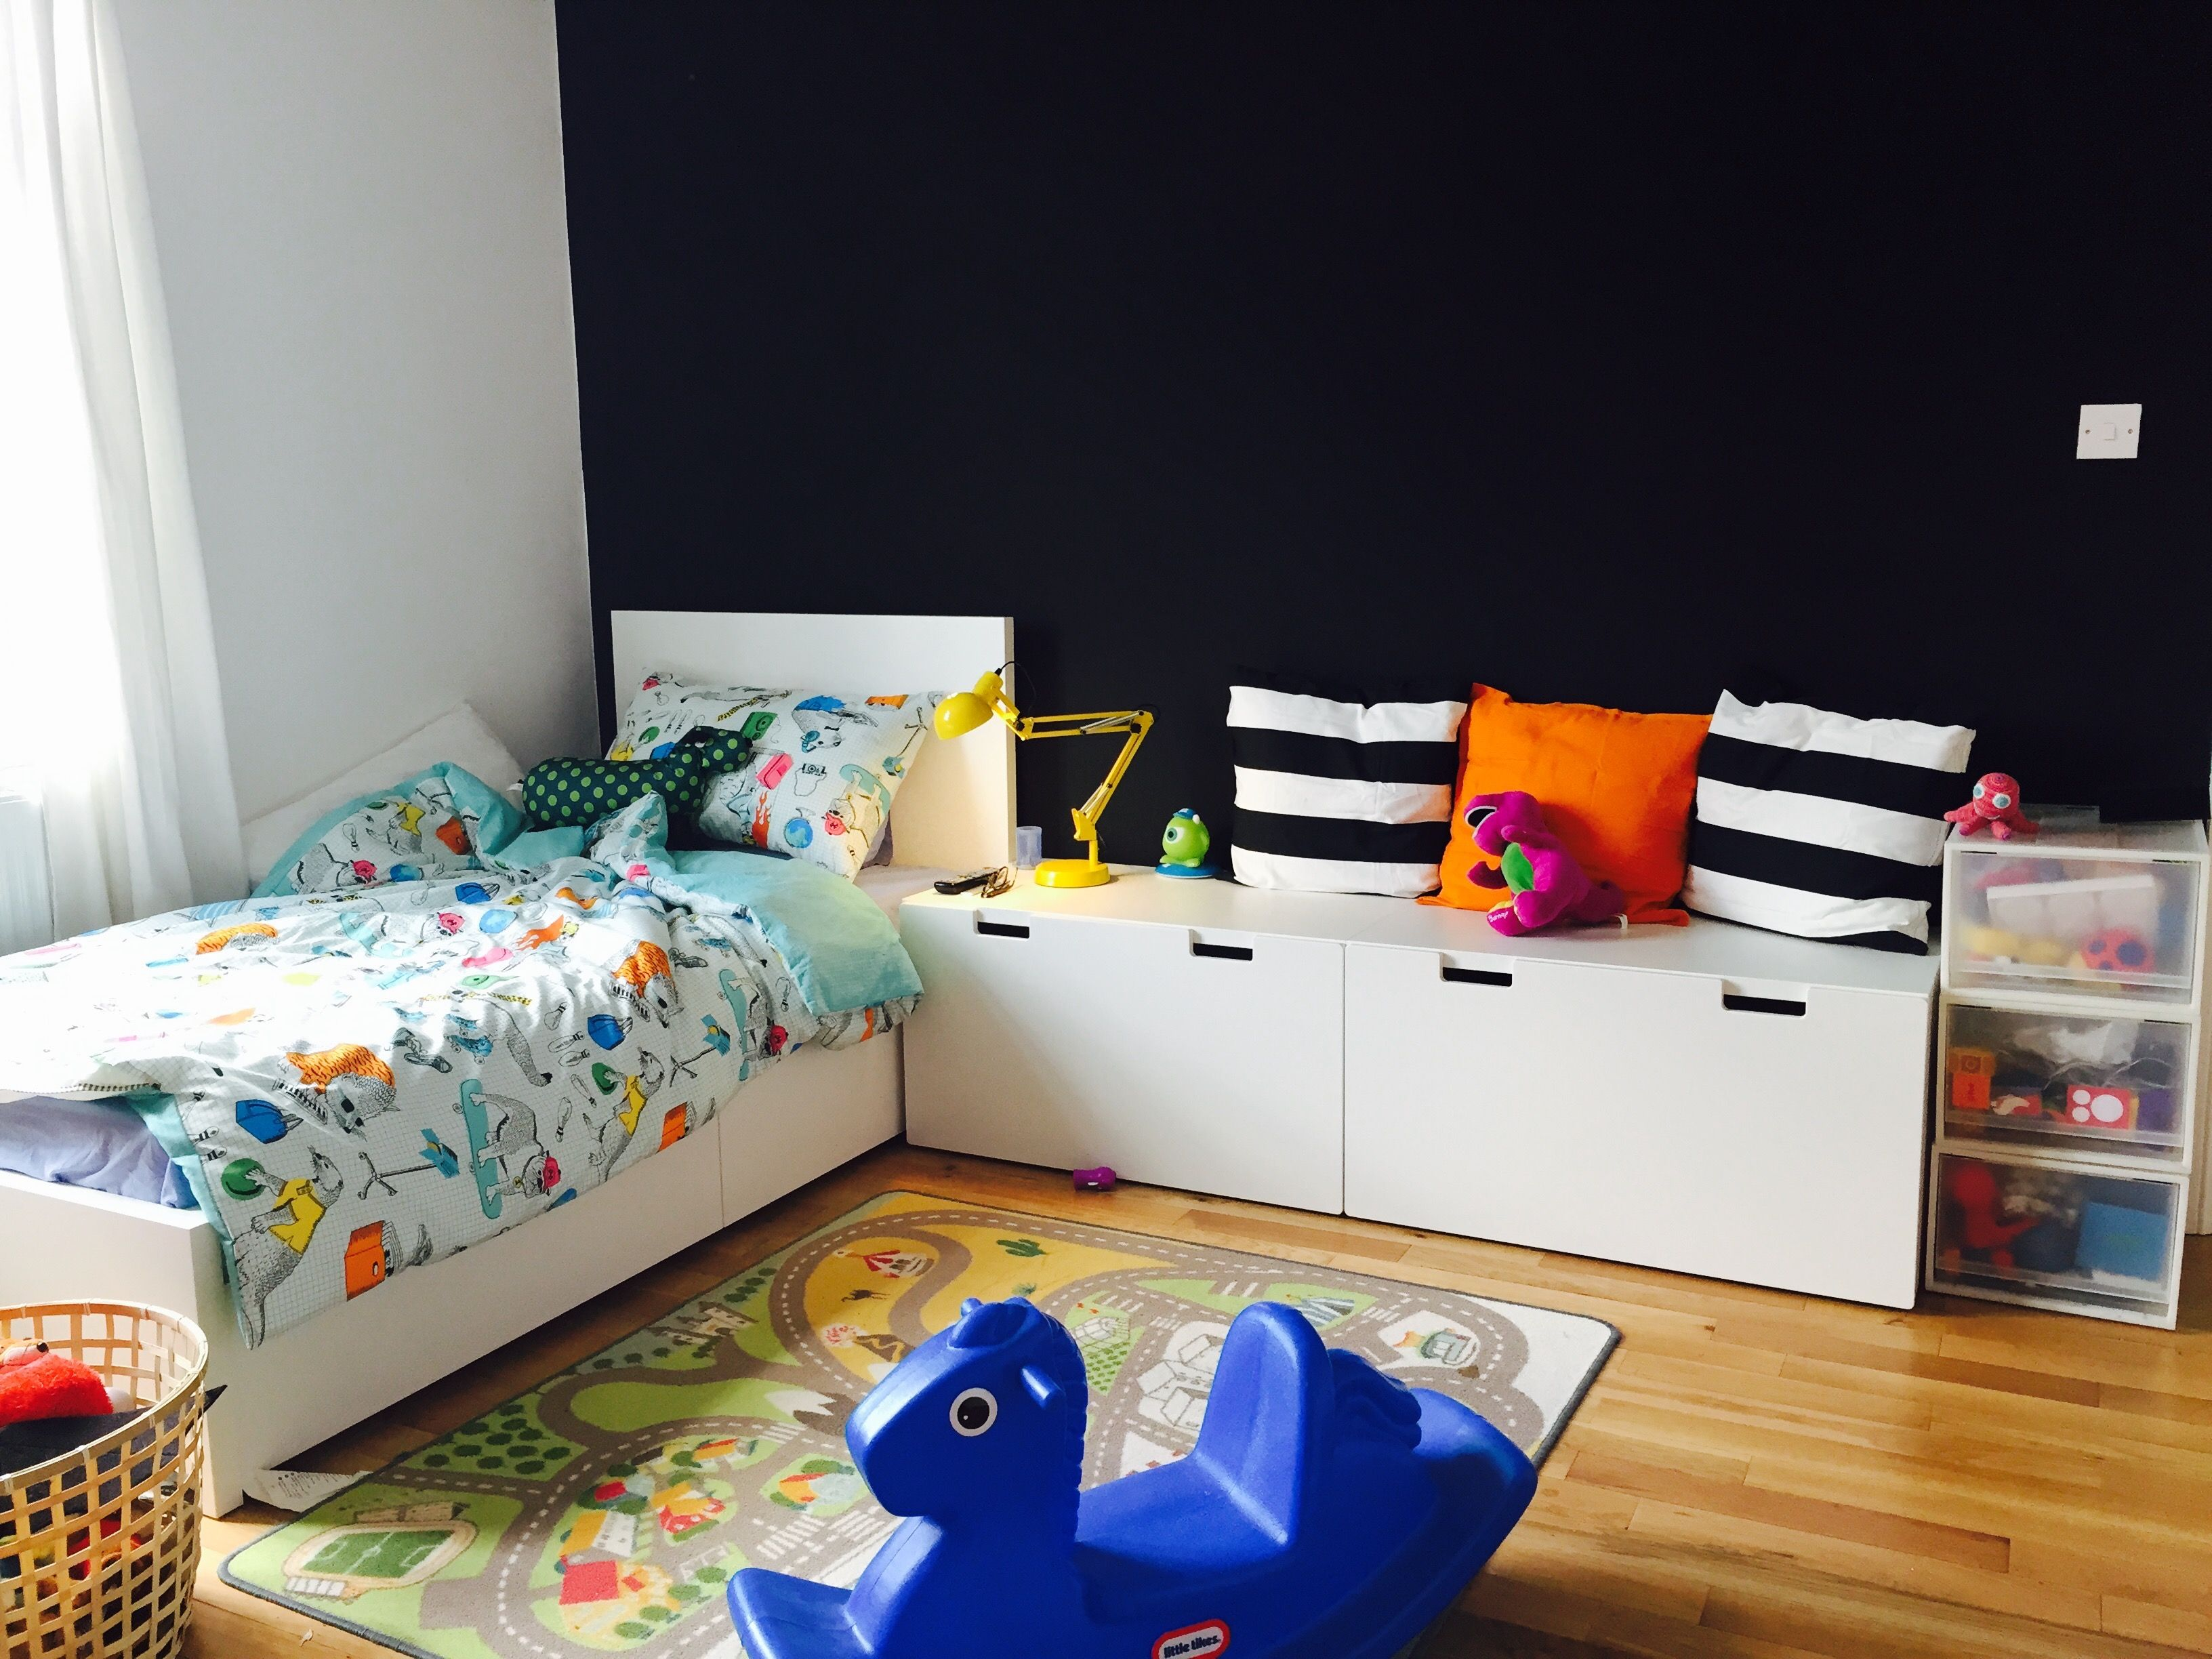 Children 39 s room ikea malm bed with stuva storage benches b de beb s e crian as pinterest - Ikea boys bedroom ideas ...